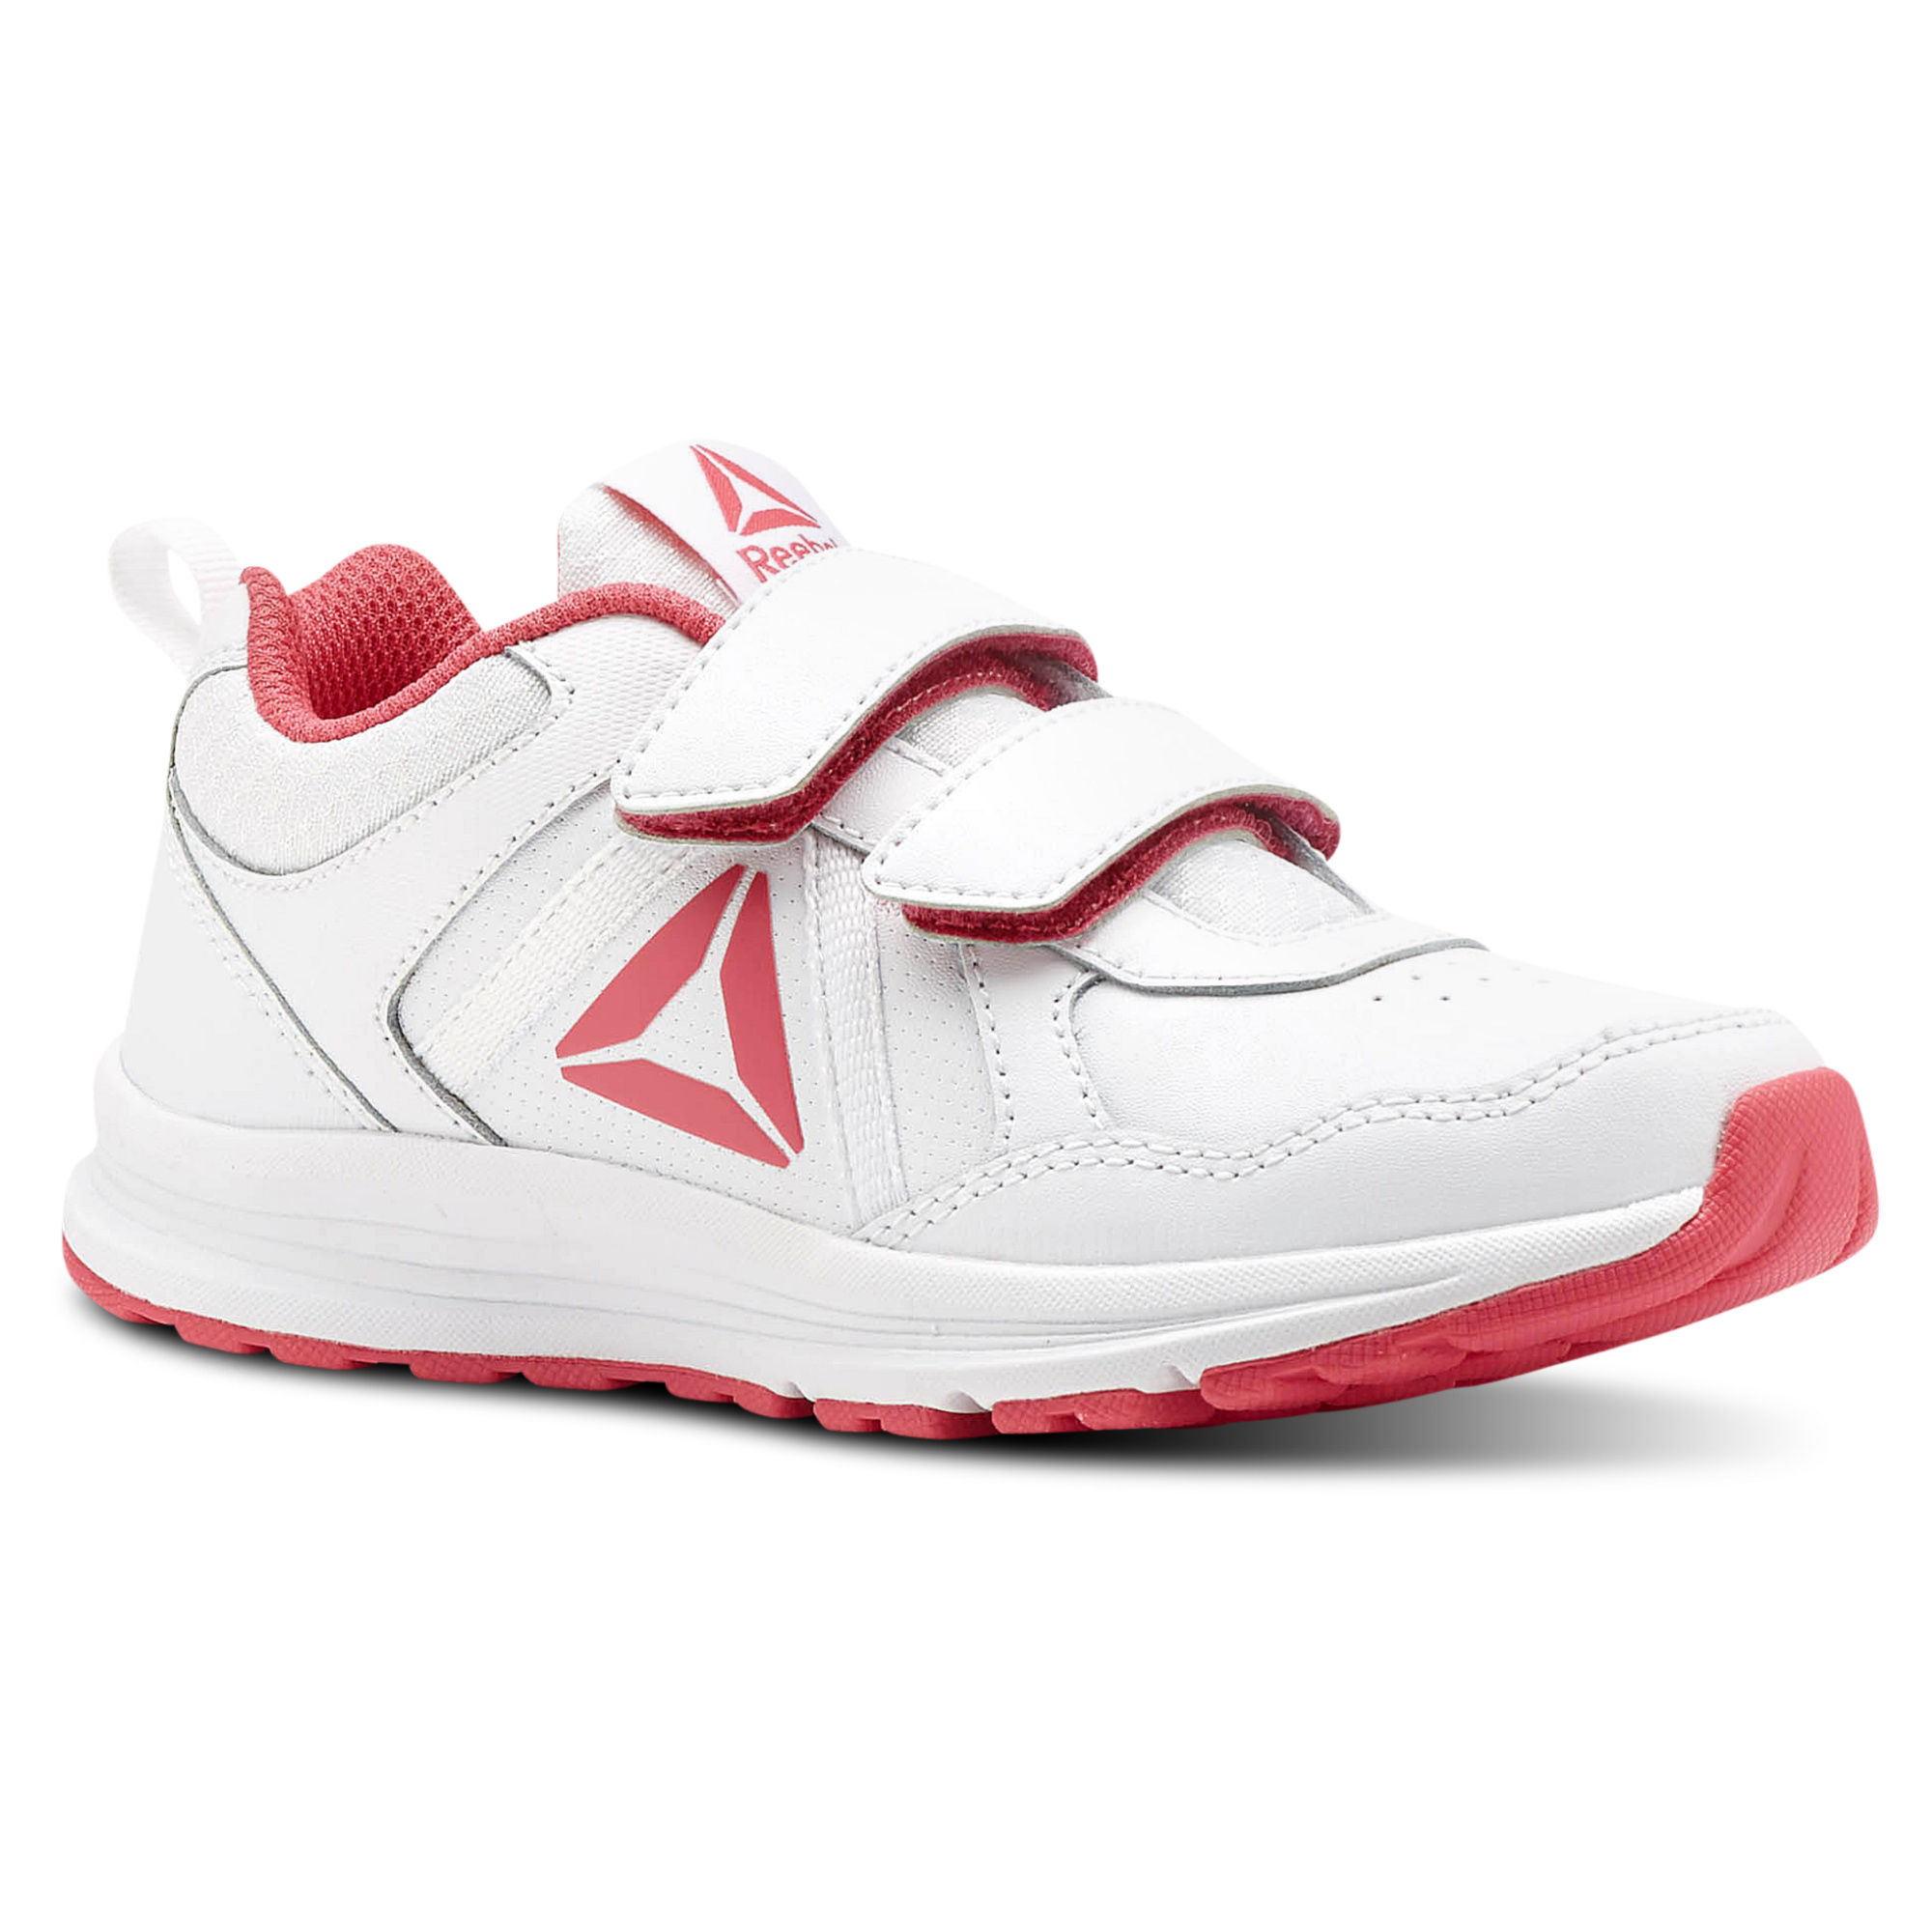 Reebok ALMOTIO 4.0 Girls White/Pink/Silver Running Shoes (335GSCNU)